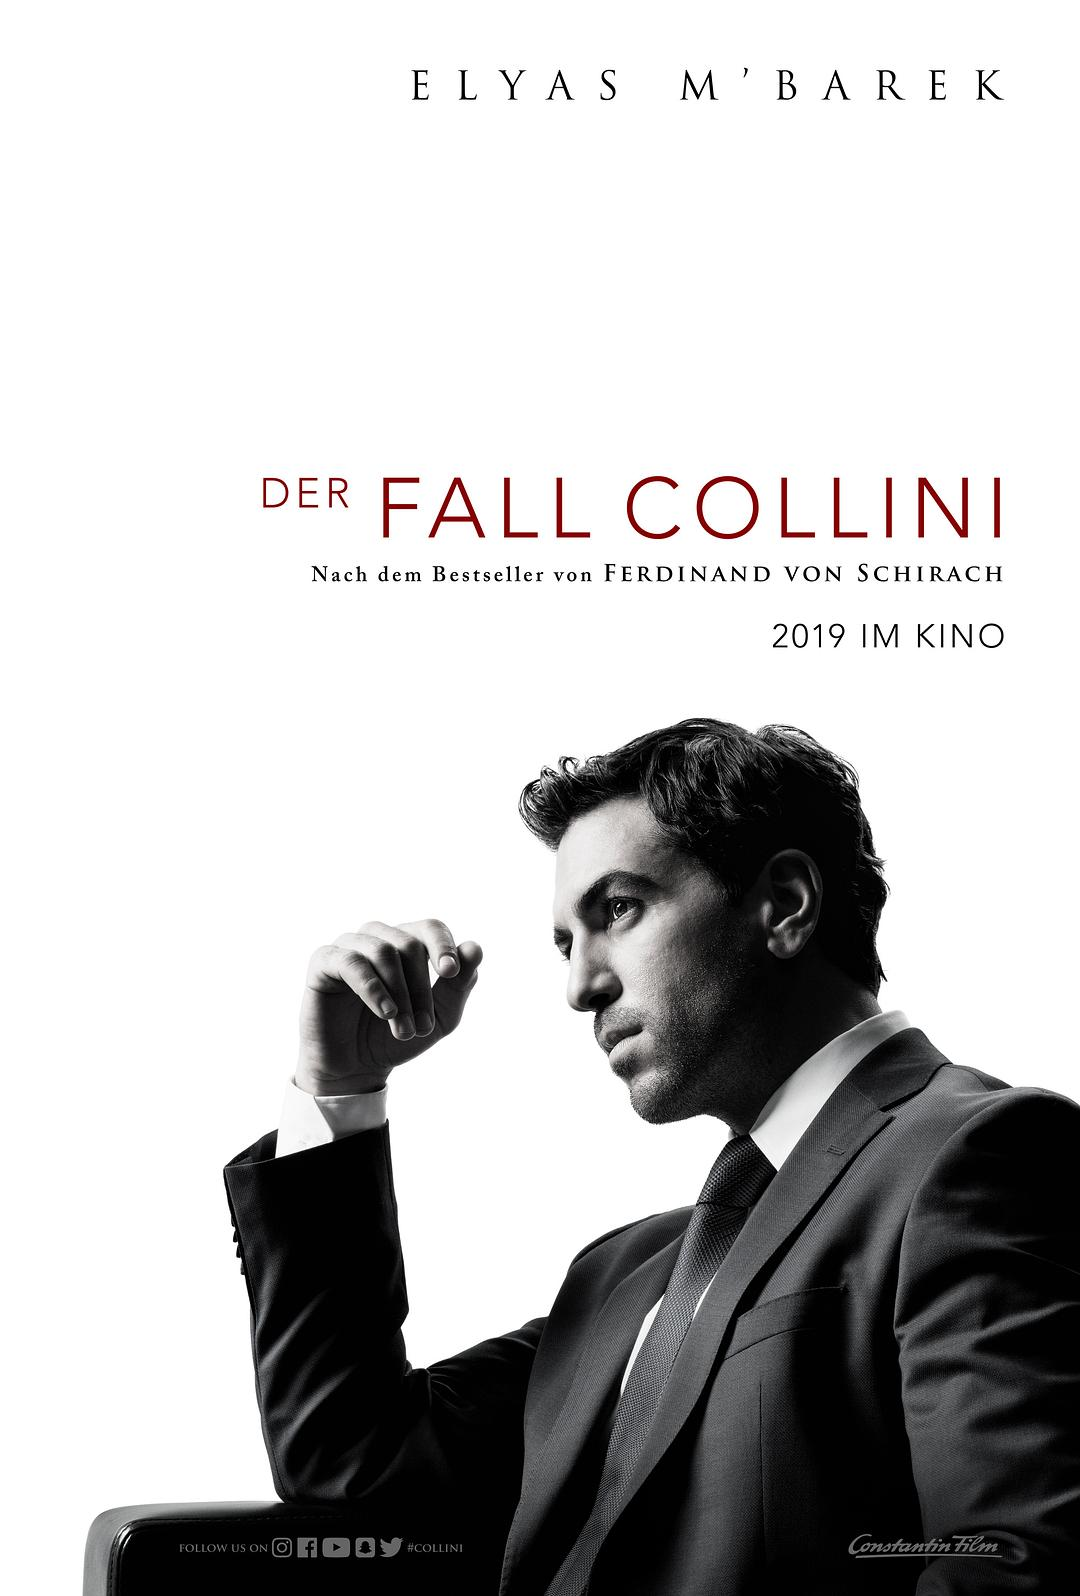 悠悠MP4_MP4电影下载_科林尼案 The.Collini.Case.2019.1080p.BluRay.x264-GUACAMOLE 9.83GB